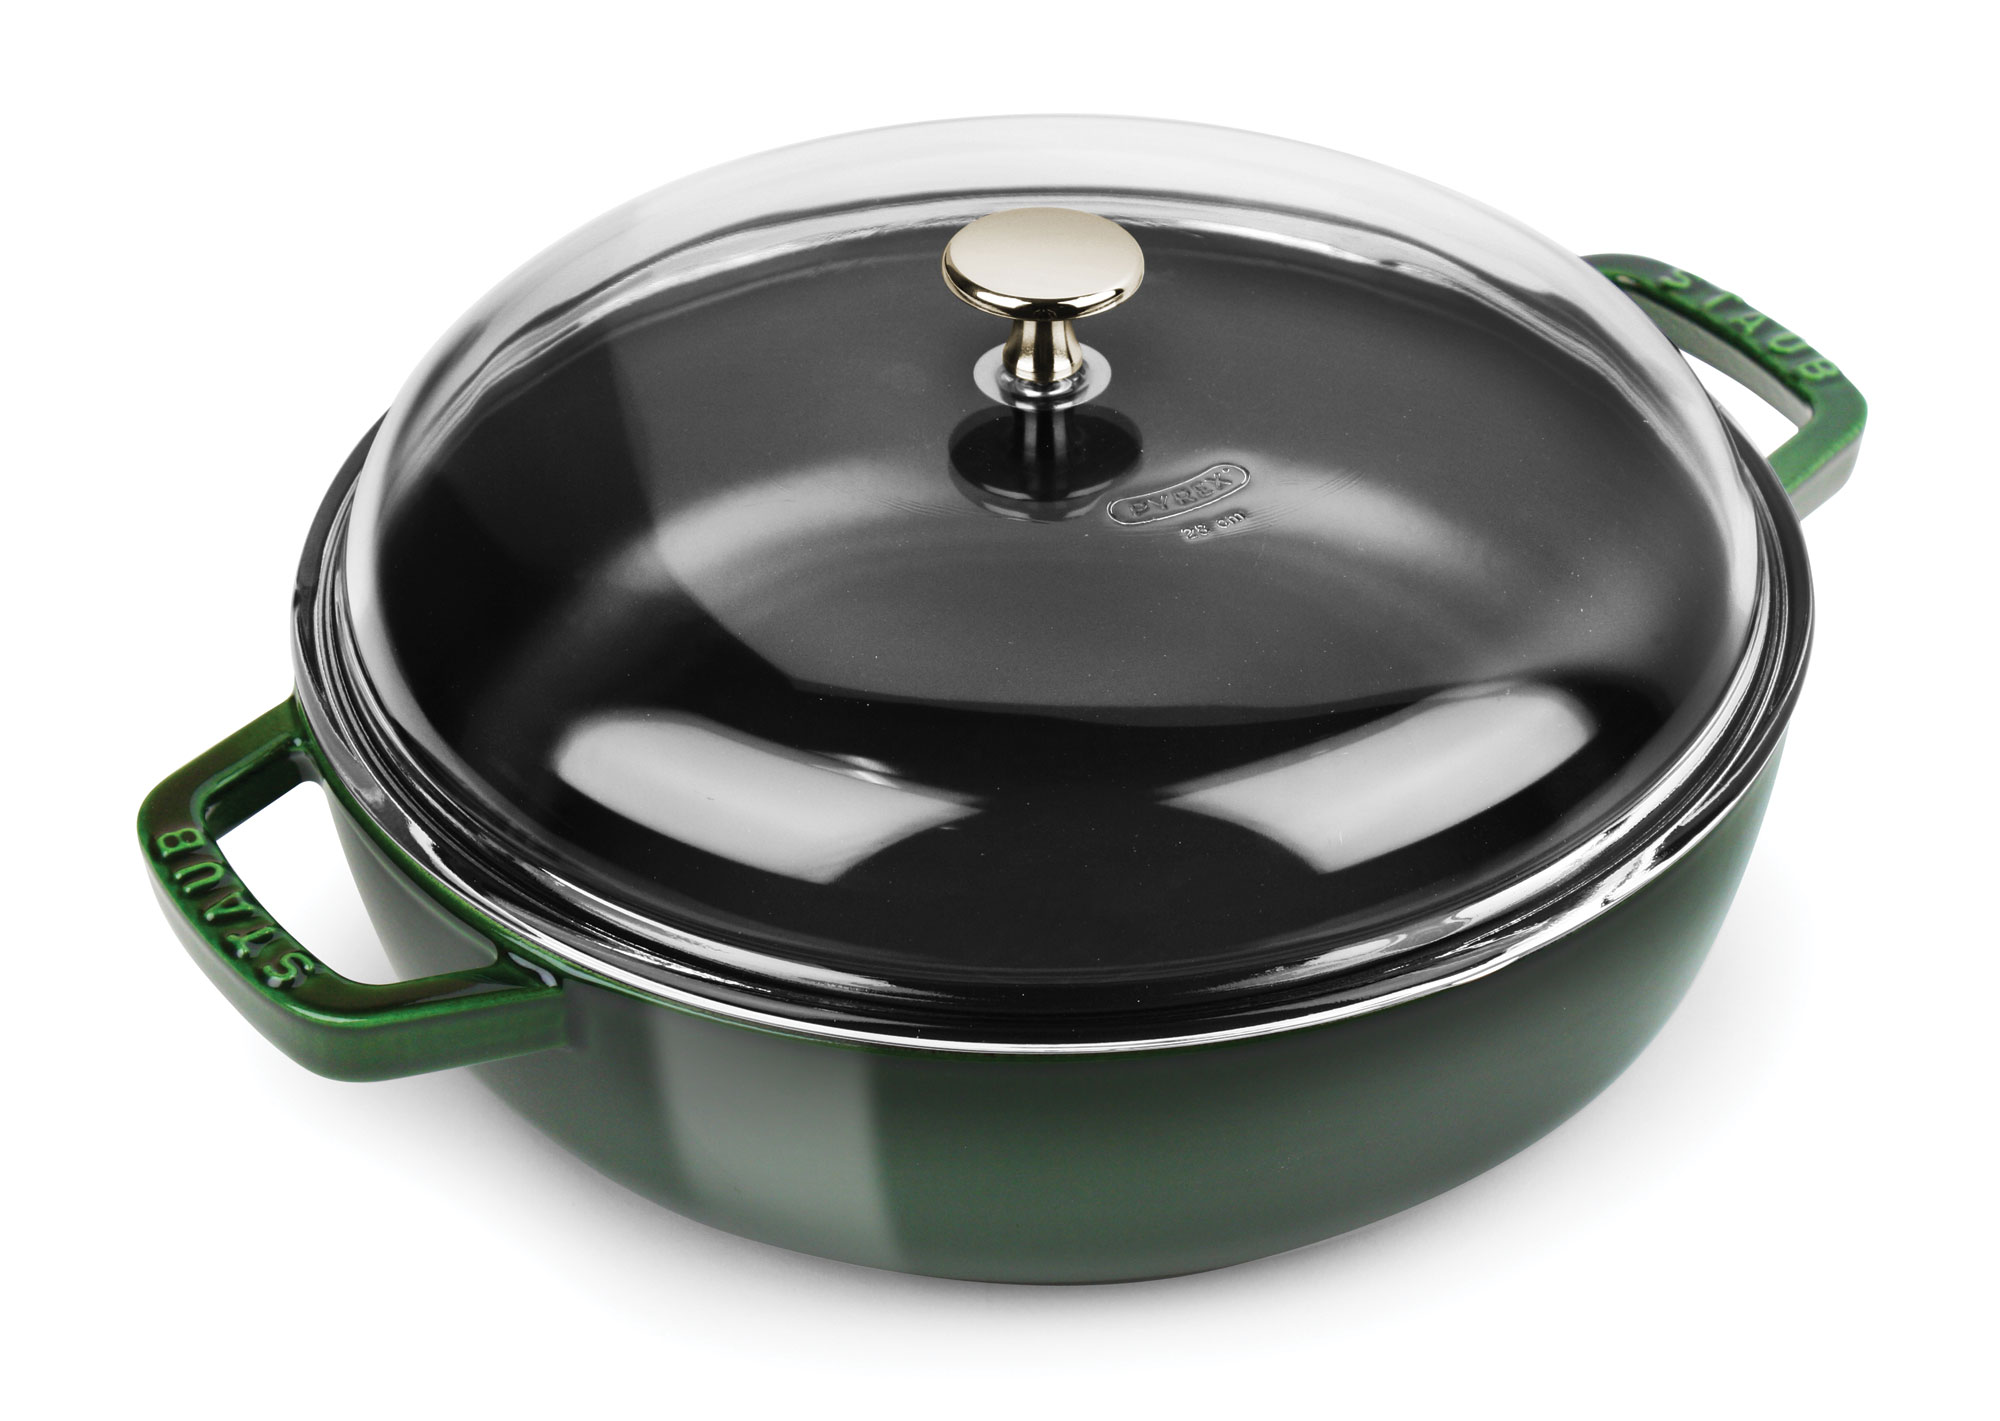 Staub Universal Pan With Domed Glass Lid 4 Quart Basil